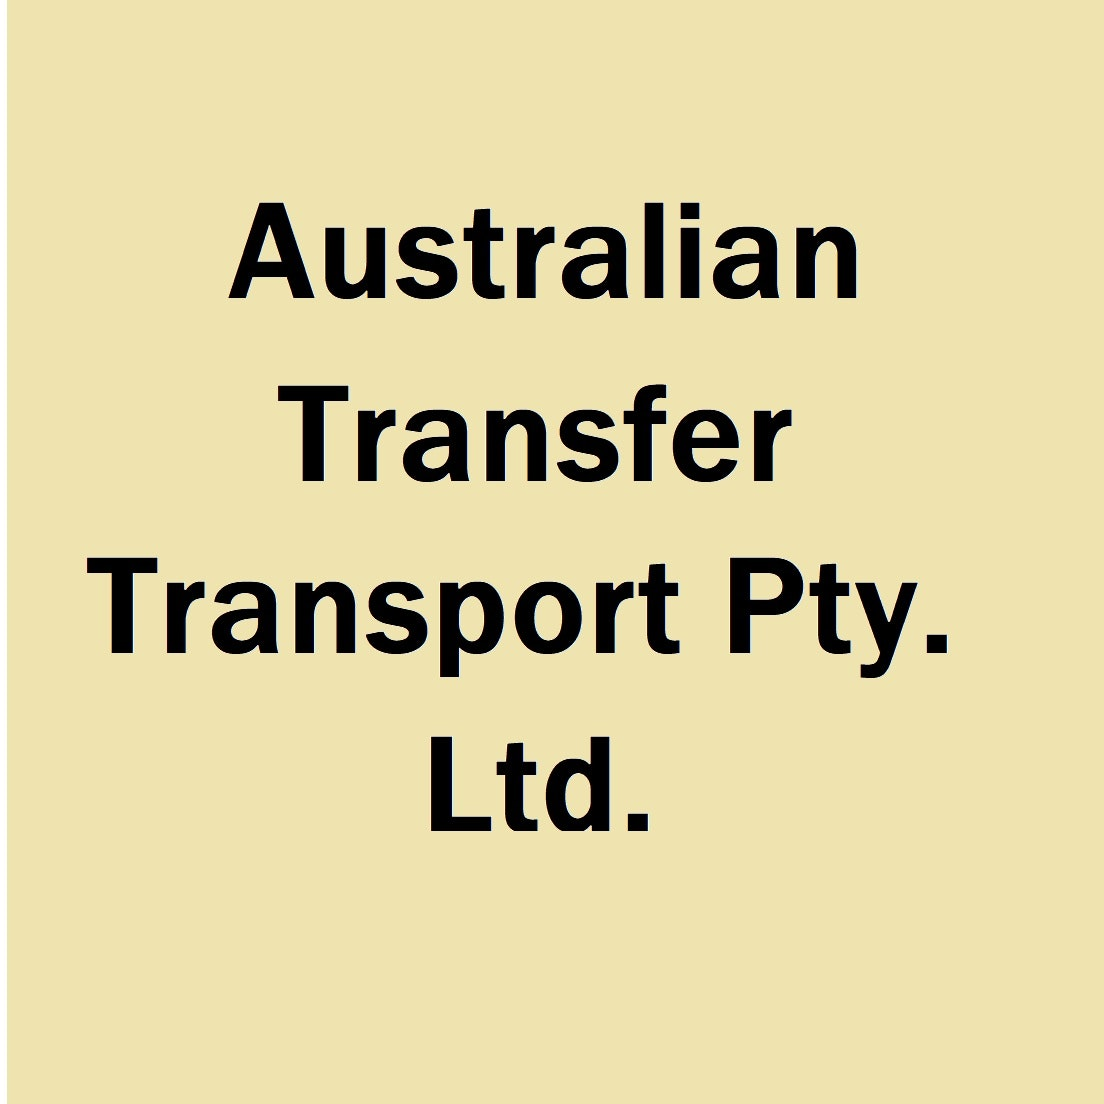 Australian Transfer Transport Pty. Ltd.